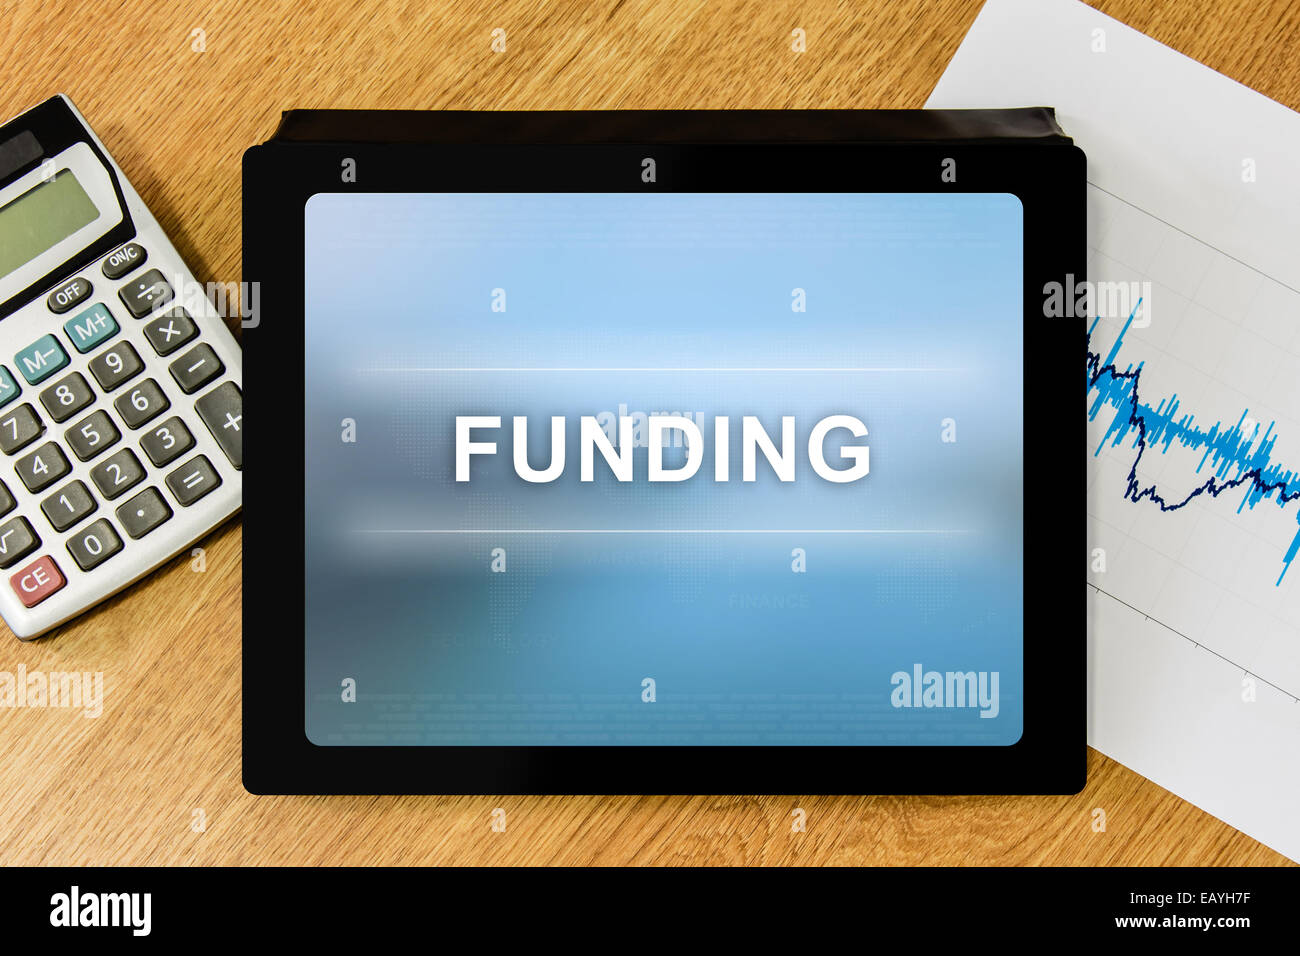 funding word on digital tablet with calculator and financial graph Stock Photo